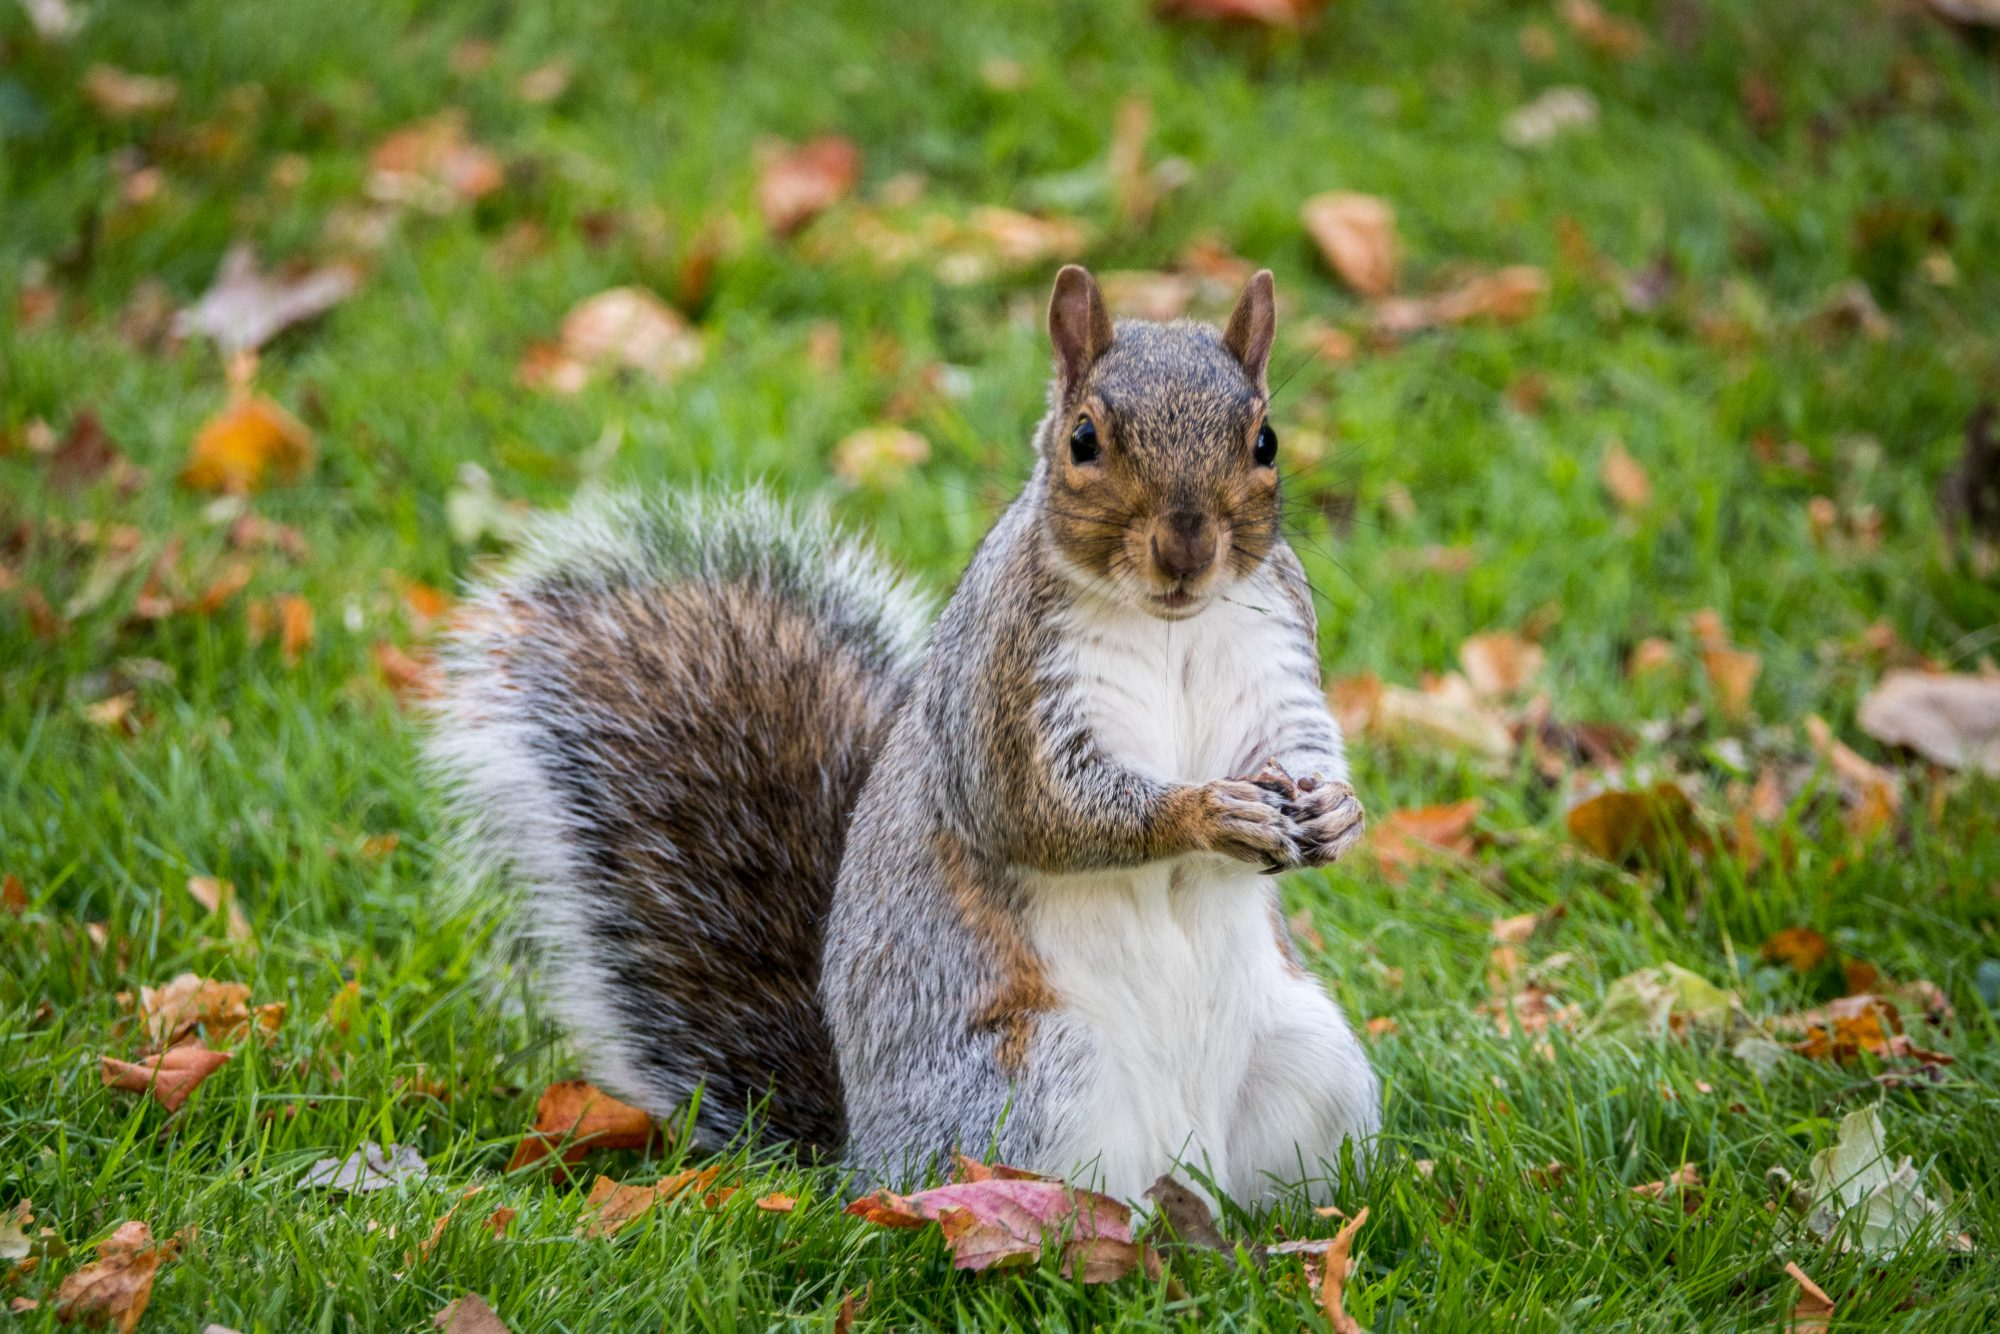 Should We Be Eating More Squirrel Meat? Some Chefs Think So.